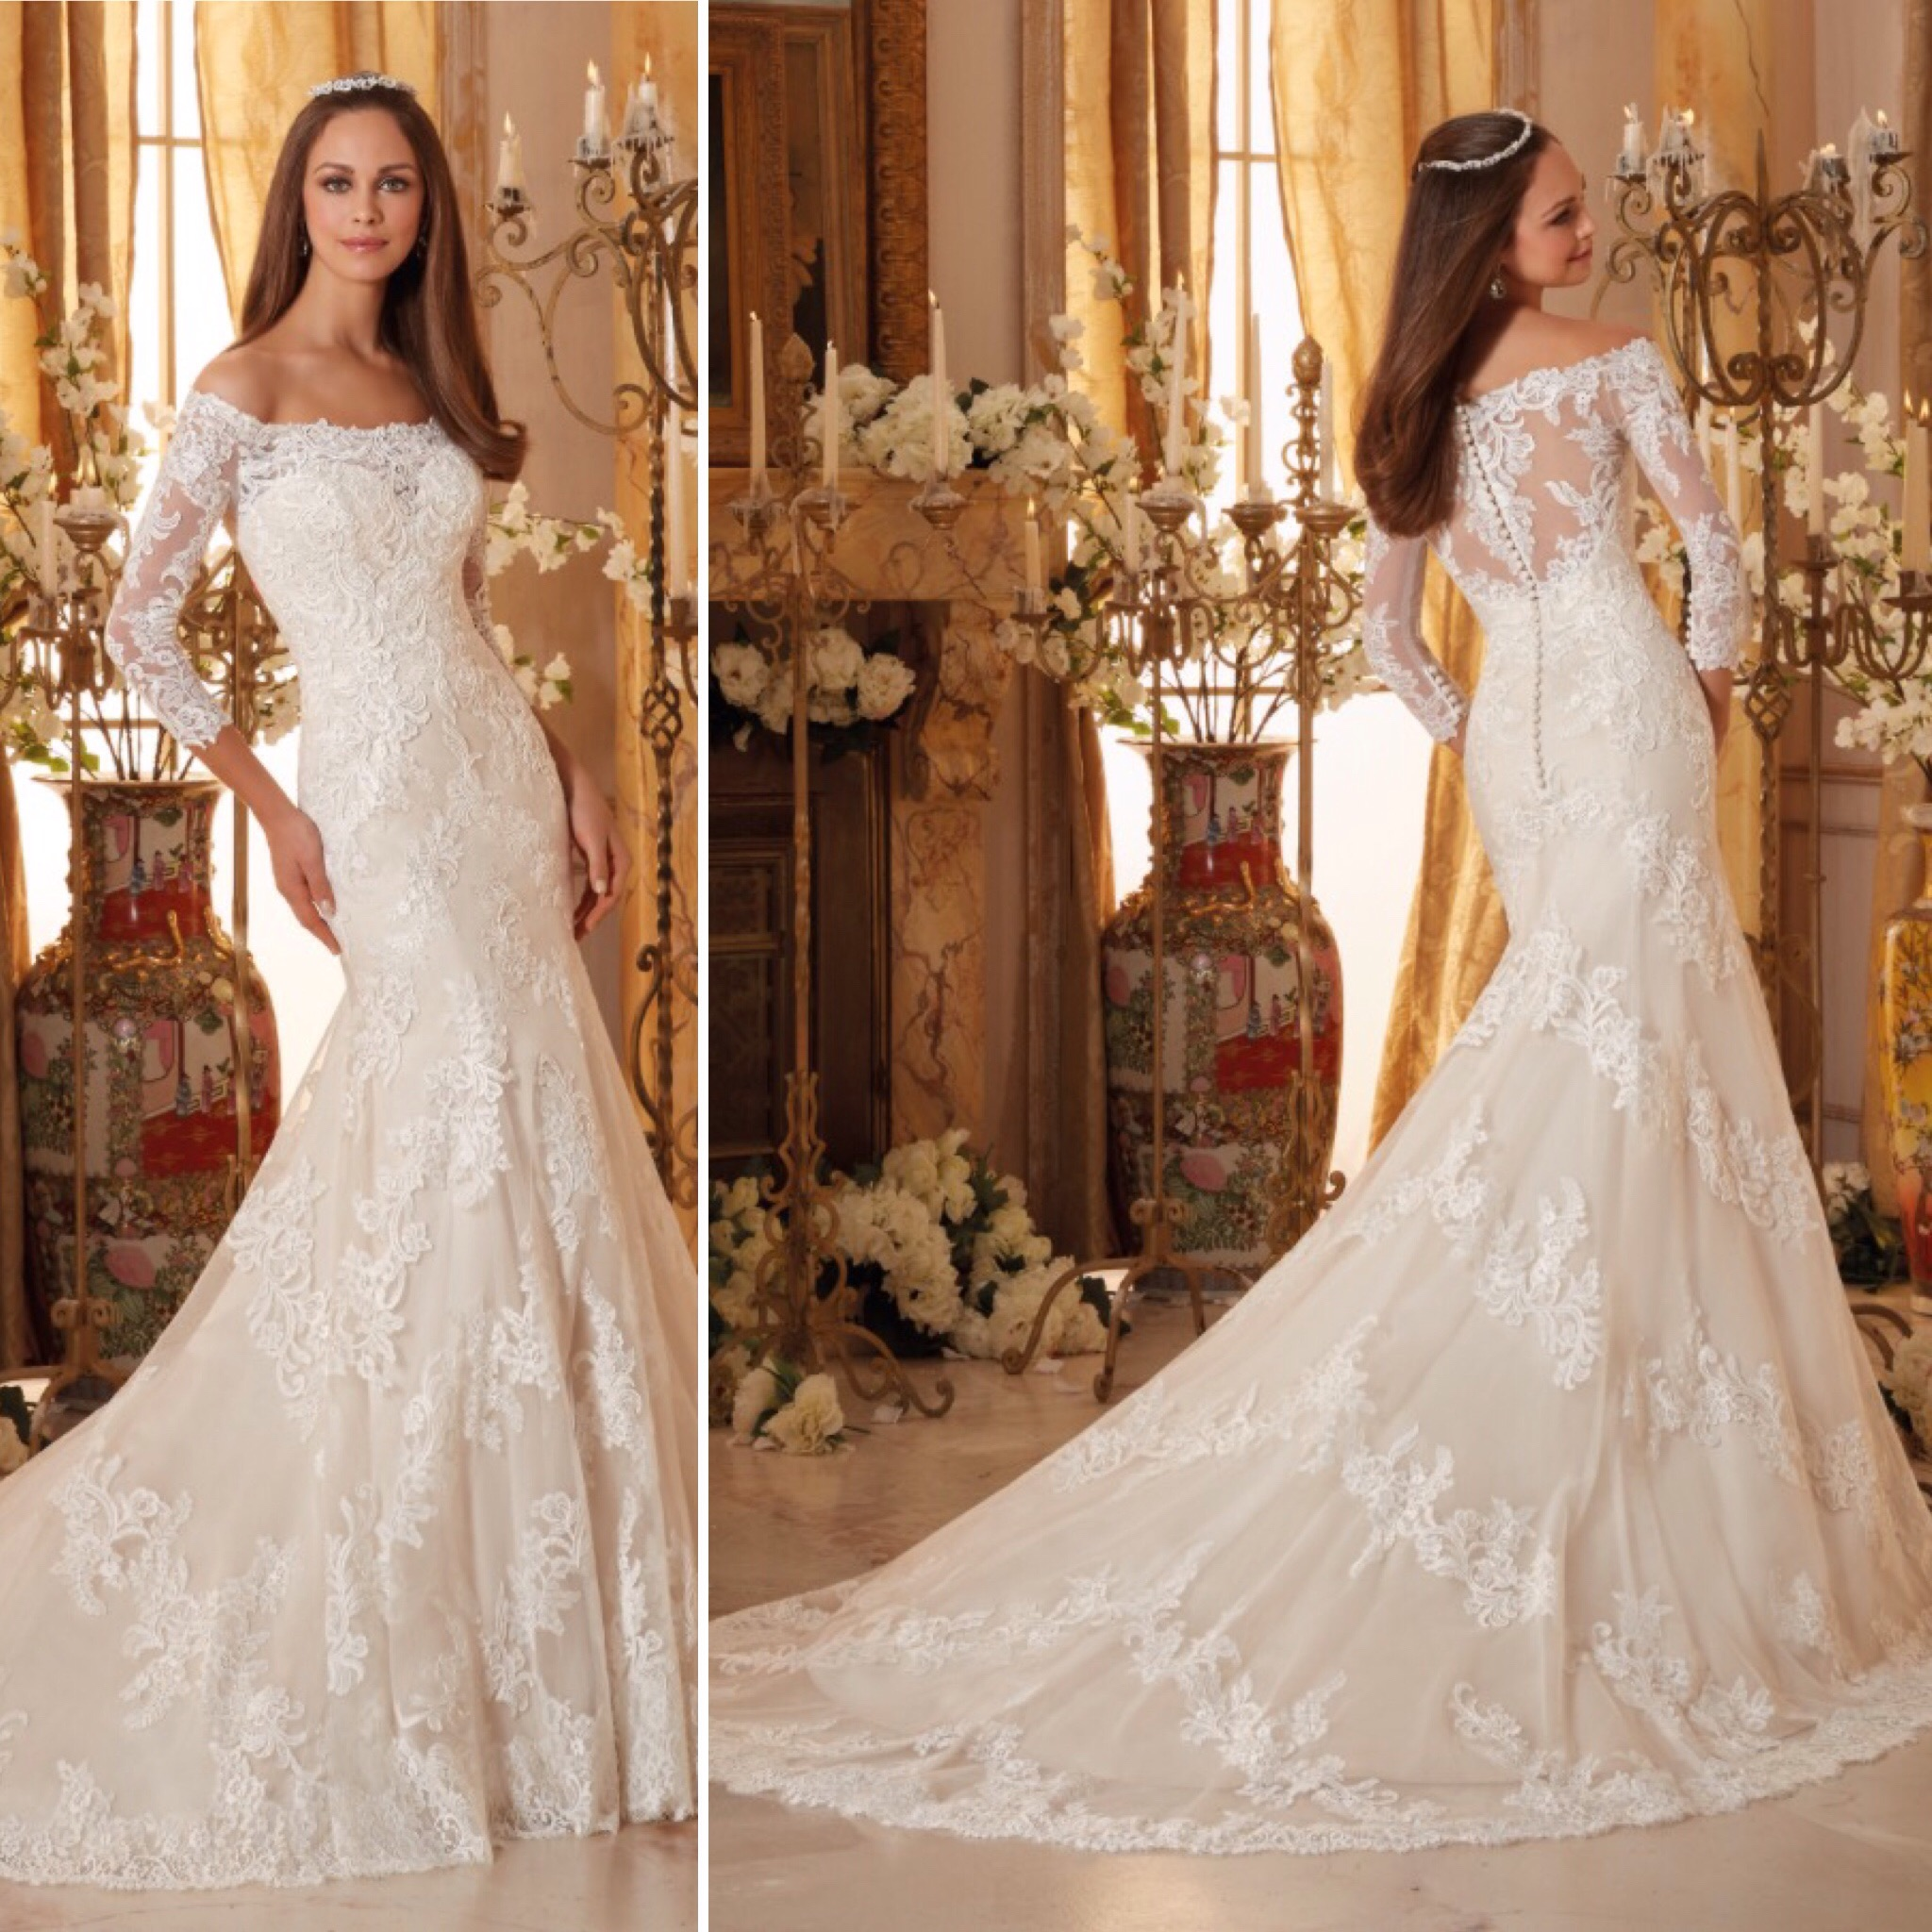 Wedding dresses boutiques usa wedding dresses in redlands for Wedding dresses from china on ebay